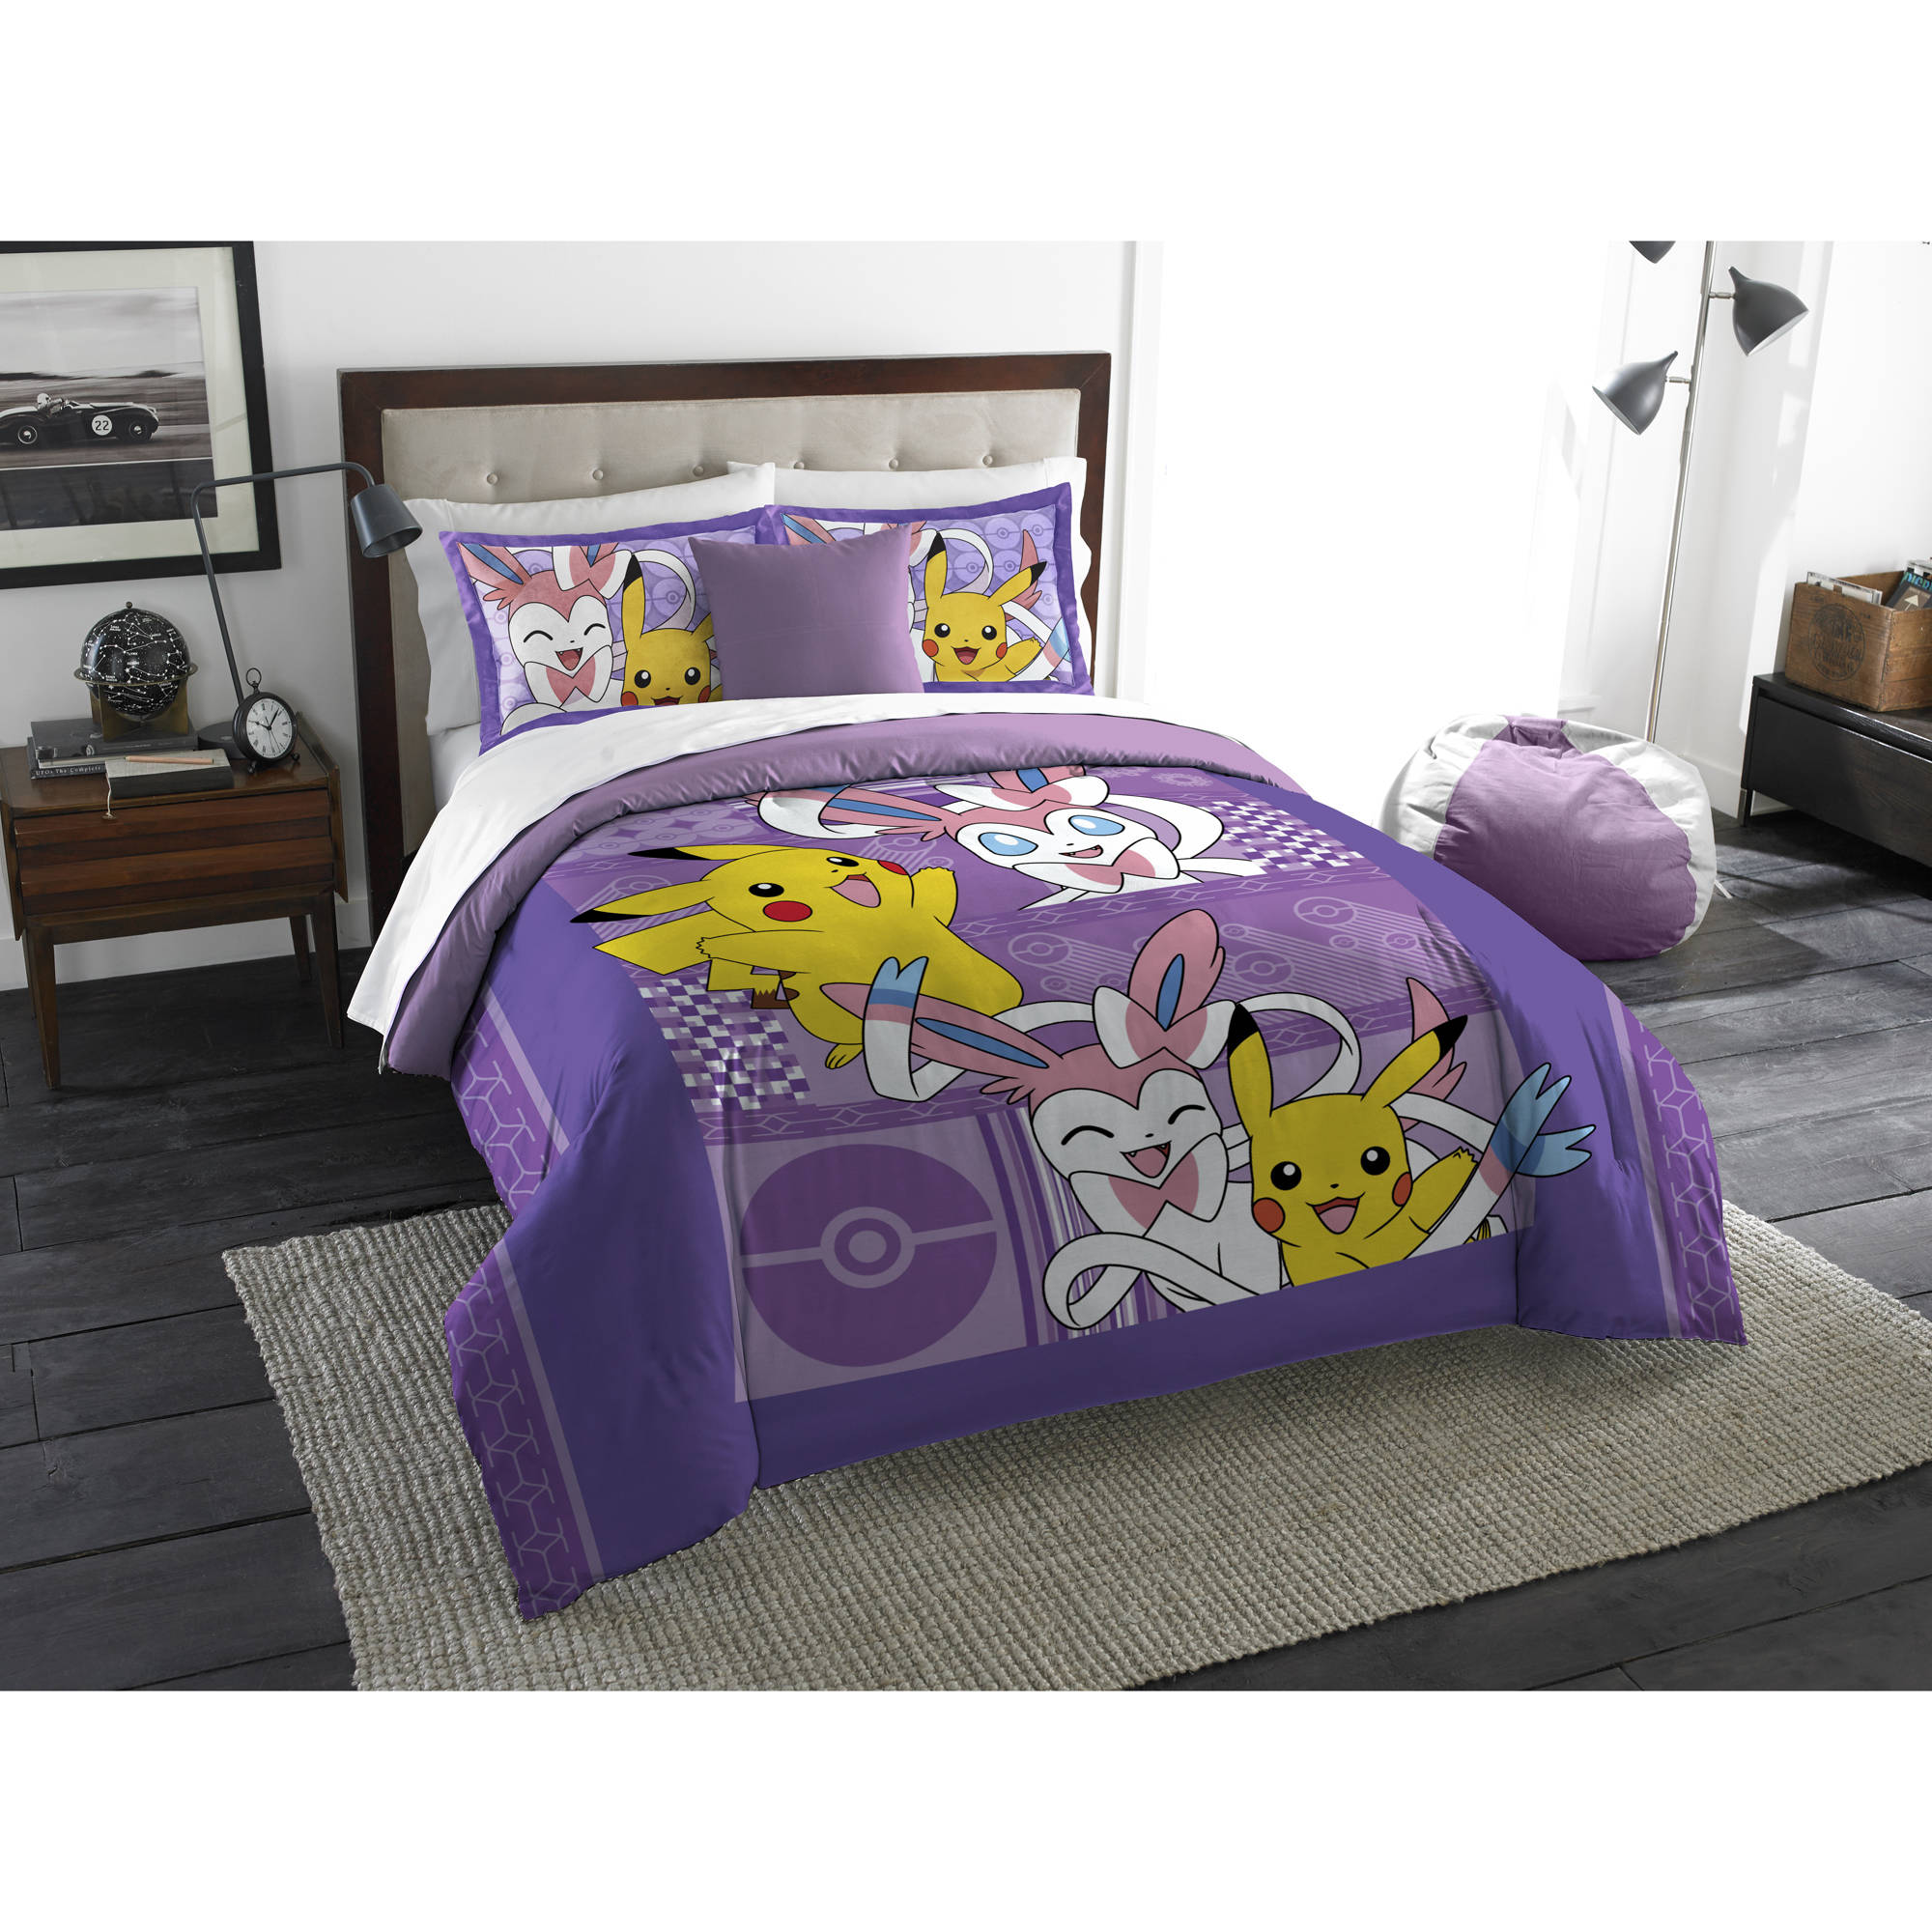 bed sets walmart lavender chu bedding comforter set 10262